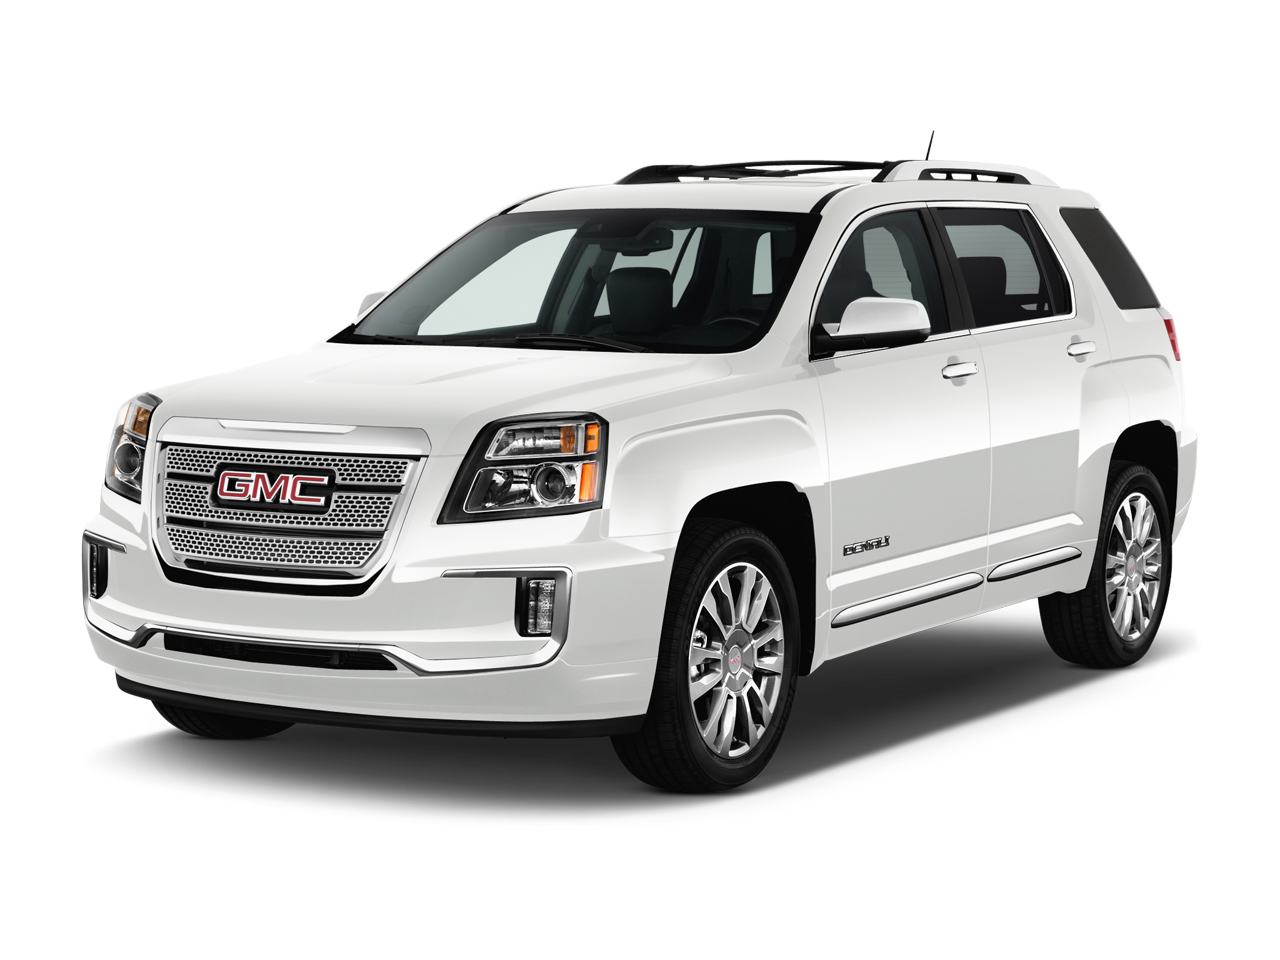 used one owner 2016 gmc terrain slt near rockmart ga. Black Bedroom Furniture Sets. Home Design Ideas